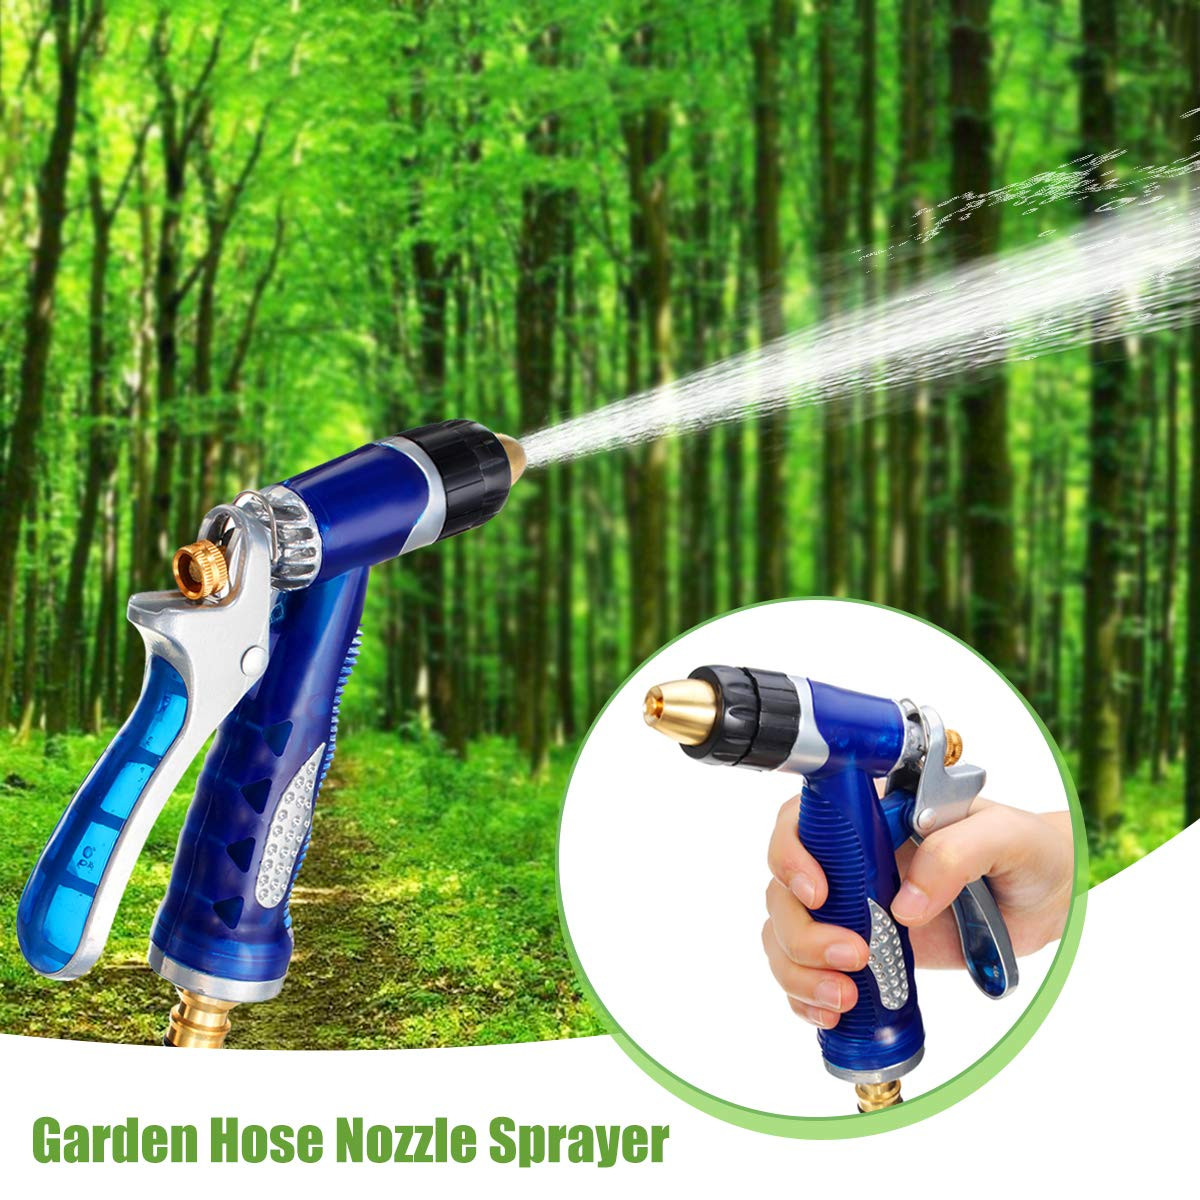 SAFETYON Garden Hose Nozzle Spray Nozzle Multi-Functional Adjustable Metal Watering Nozzle High Pressure Hand Sprayer Ideal Watering Your Garden, Lawn, Flower Beds Washing Your Car, Pets Ground